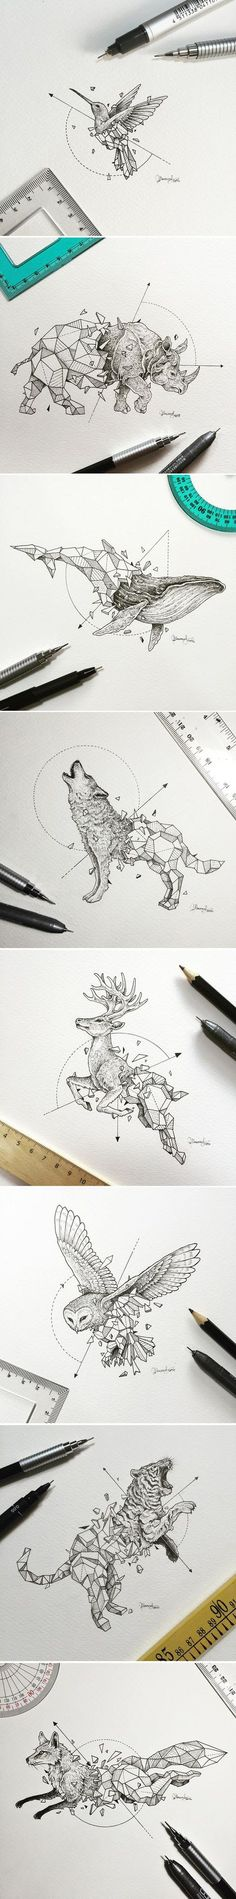 8 most popular art Pins this week - leock@gm.cute.edu.tw - 中國科技大學 Gmail 郵件